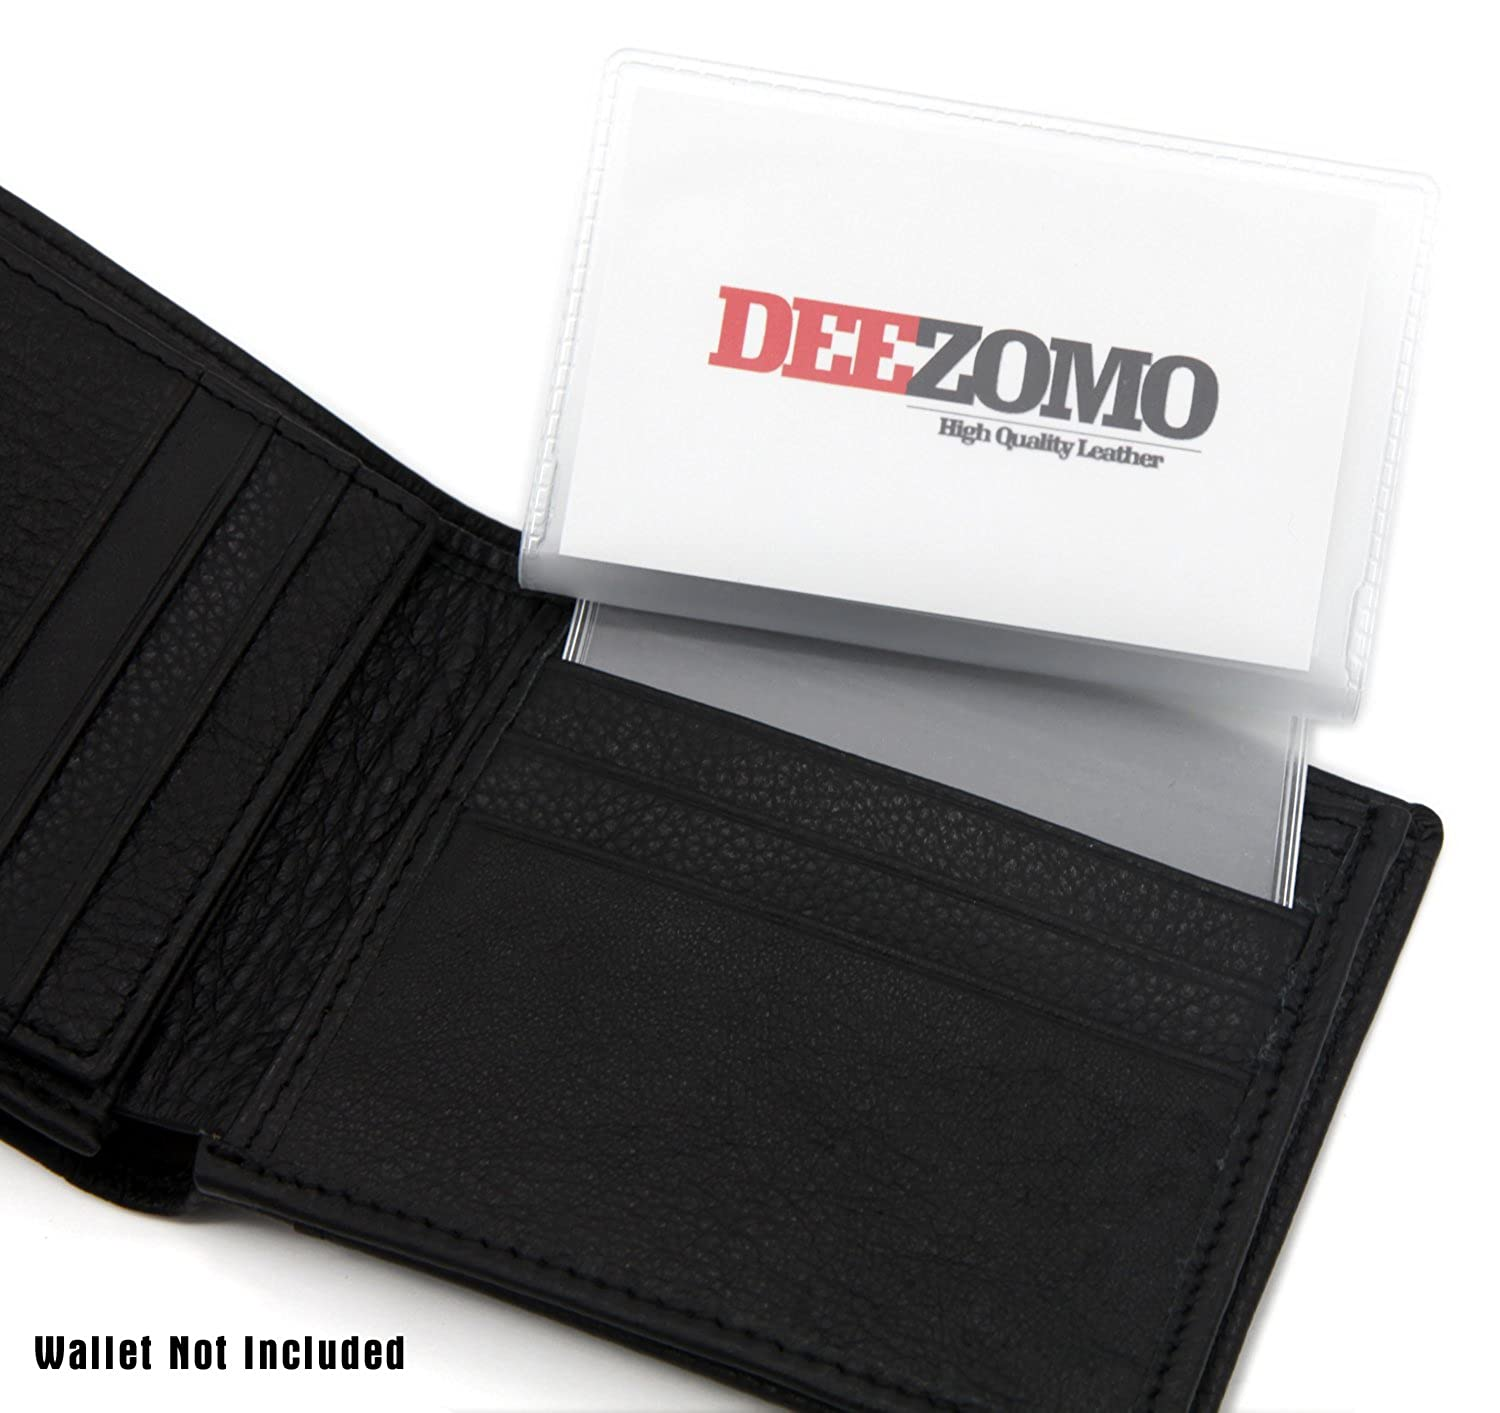 SET OF 2 Wallet Inserts Replacement 6 Page Card Holder for Bifold or Trifolds Wallet